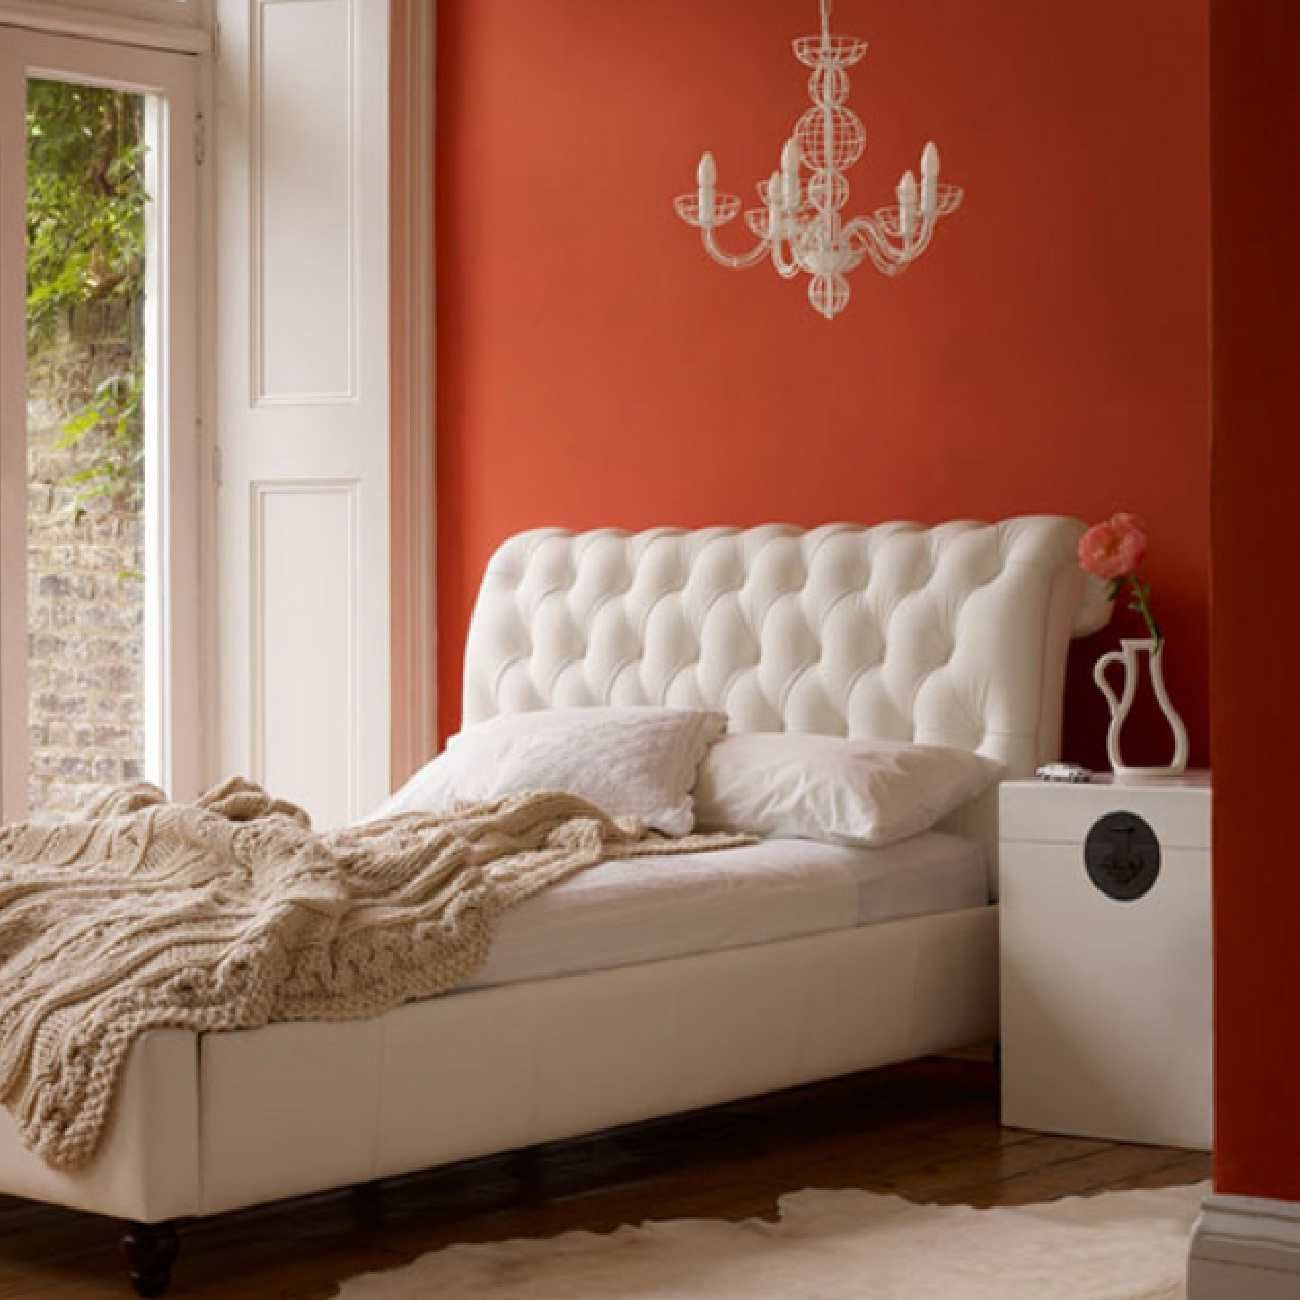 Accent wall paint ideas bedroom  interior design accent walls  Google Search  A splash of colour